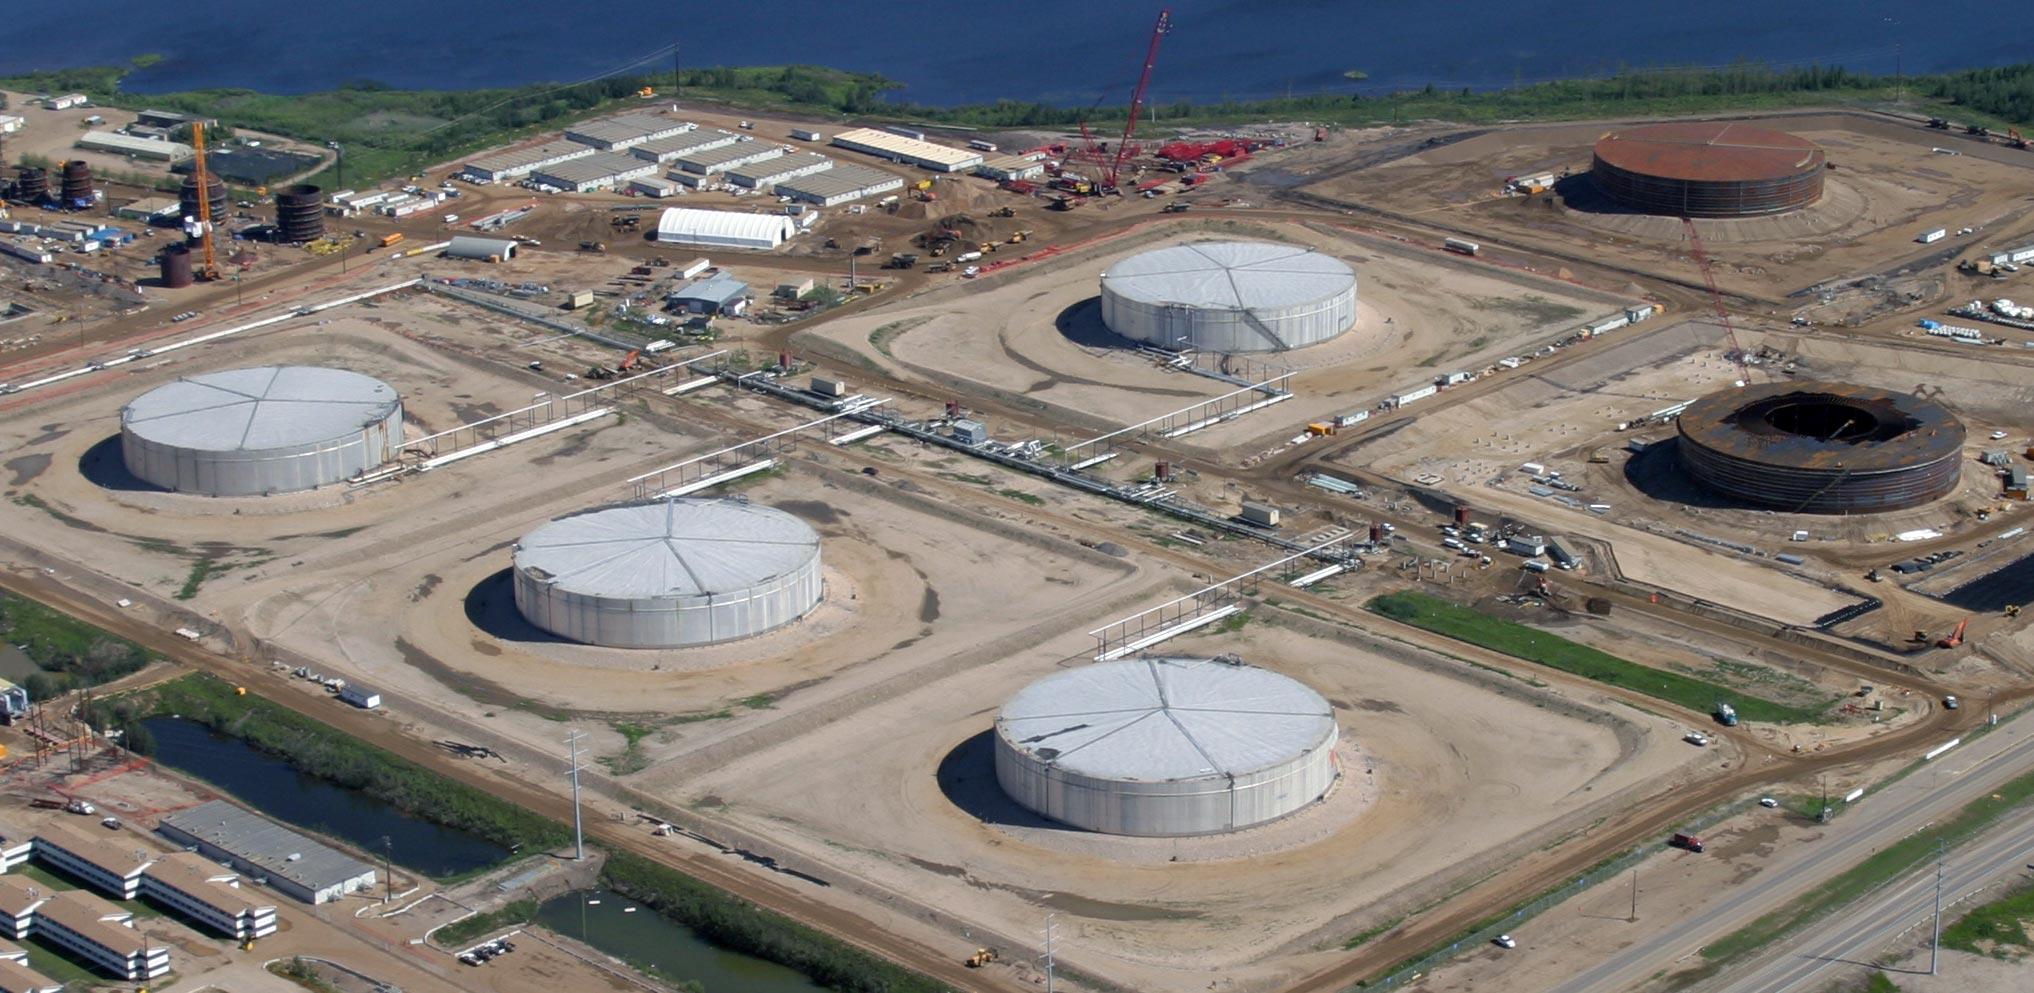 288' x 48' High, API 650 Column Supported Cone Roof Hot (400°F) Bitumen Storage Tanks